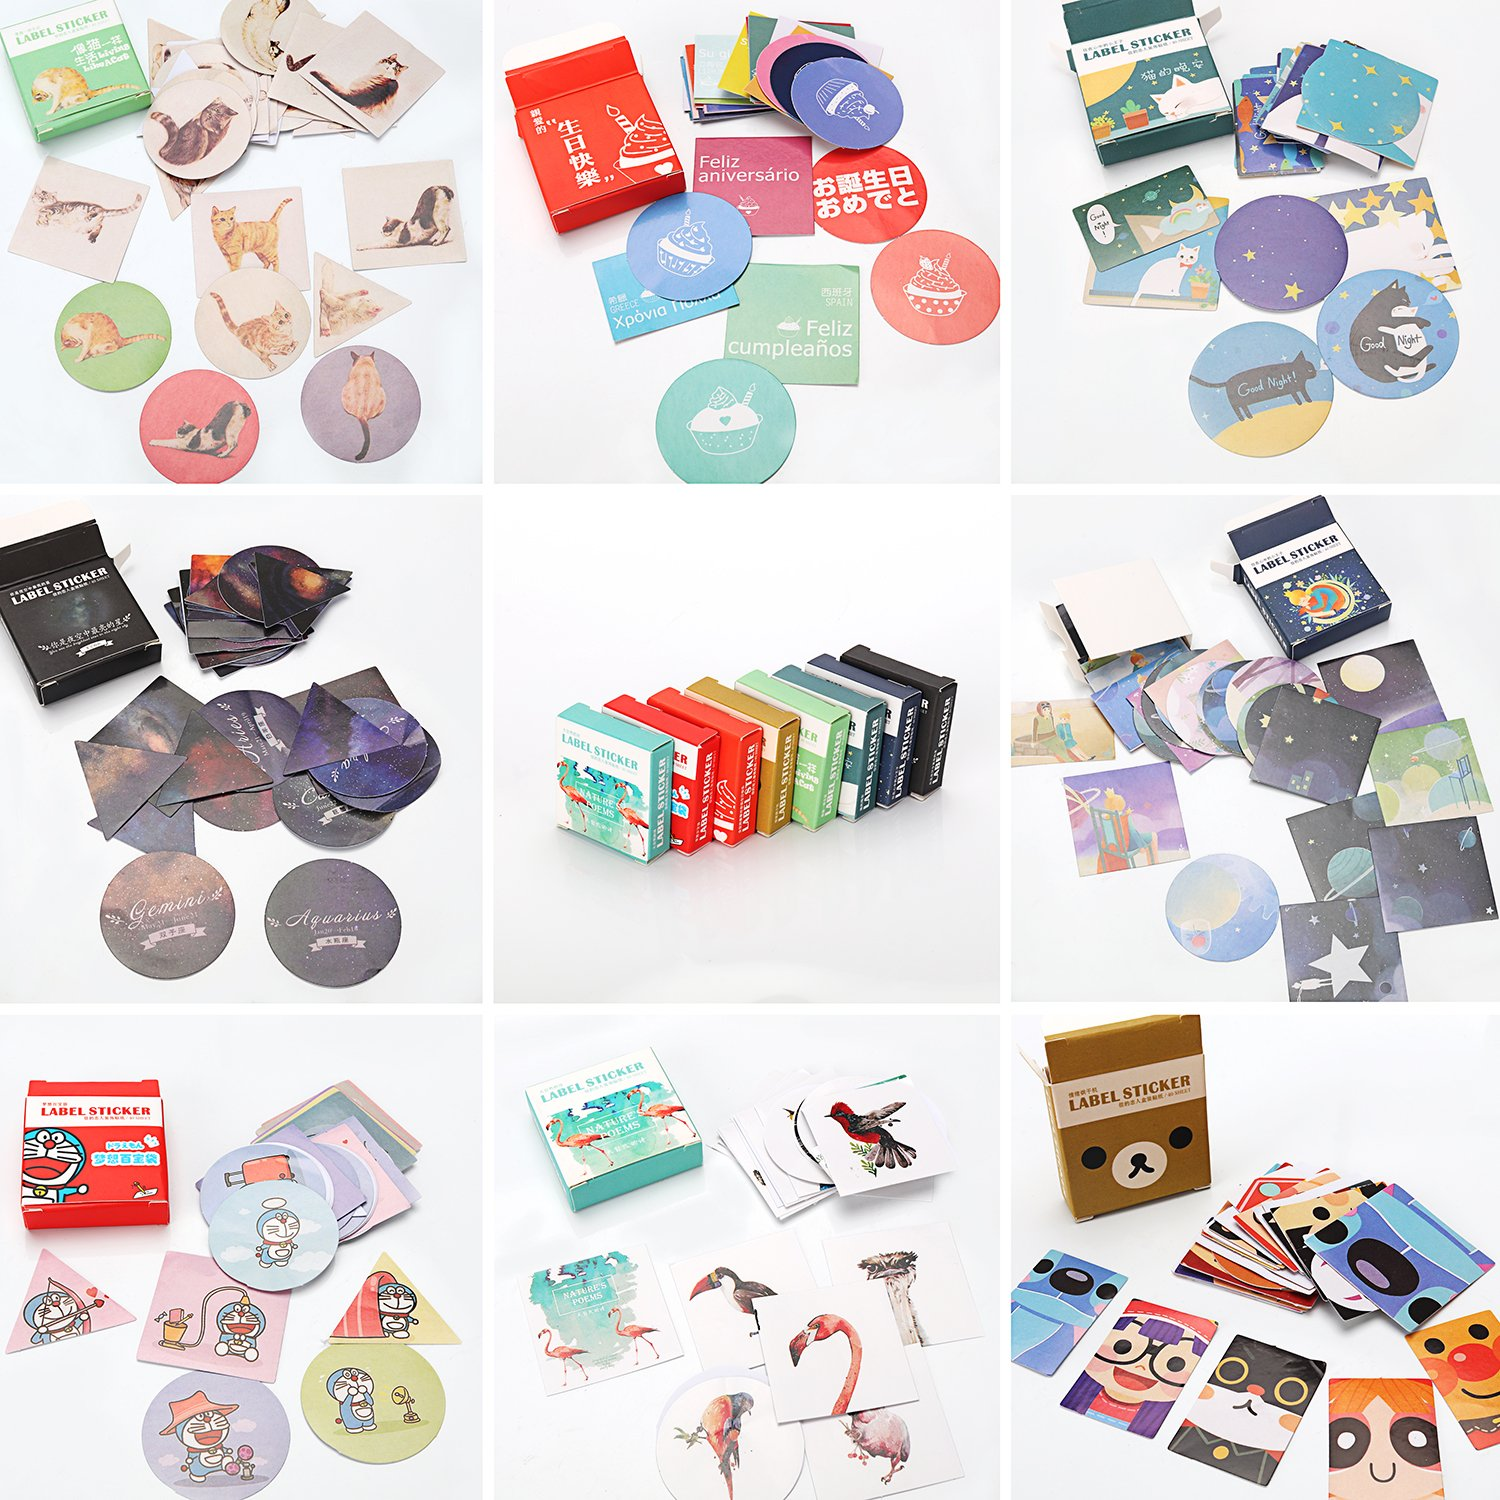 Molshine 320pcs Label Stickers- Cute Decorative Boxed Stickers for Personalize Laptops, Skateboards, Luggage, Cars, Bikes, Bicycles, Books